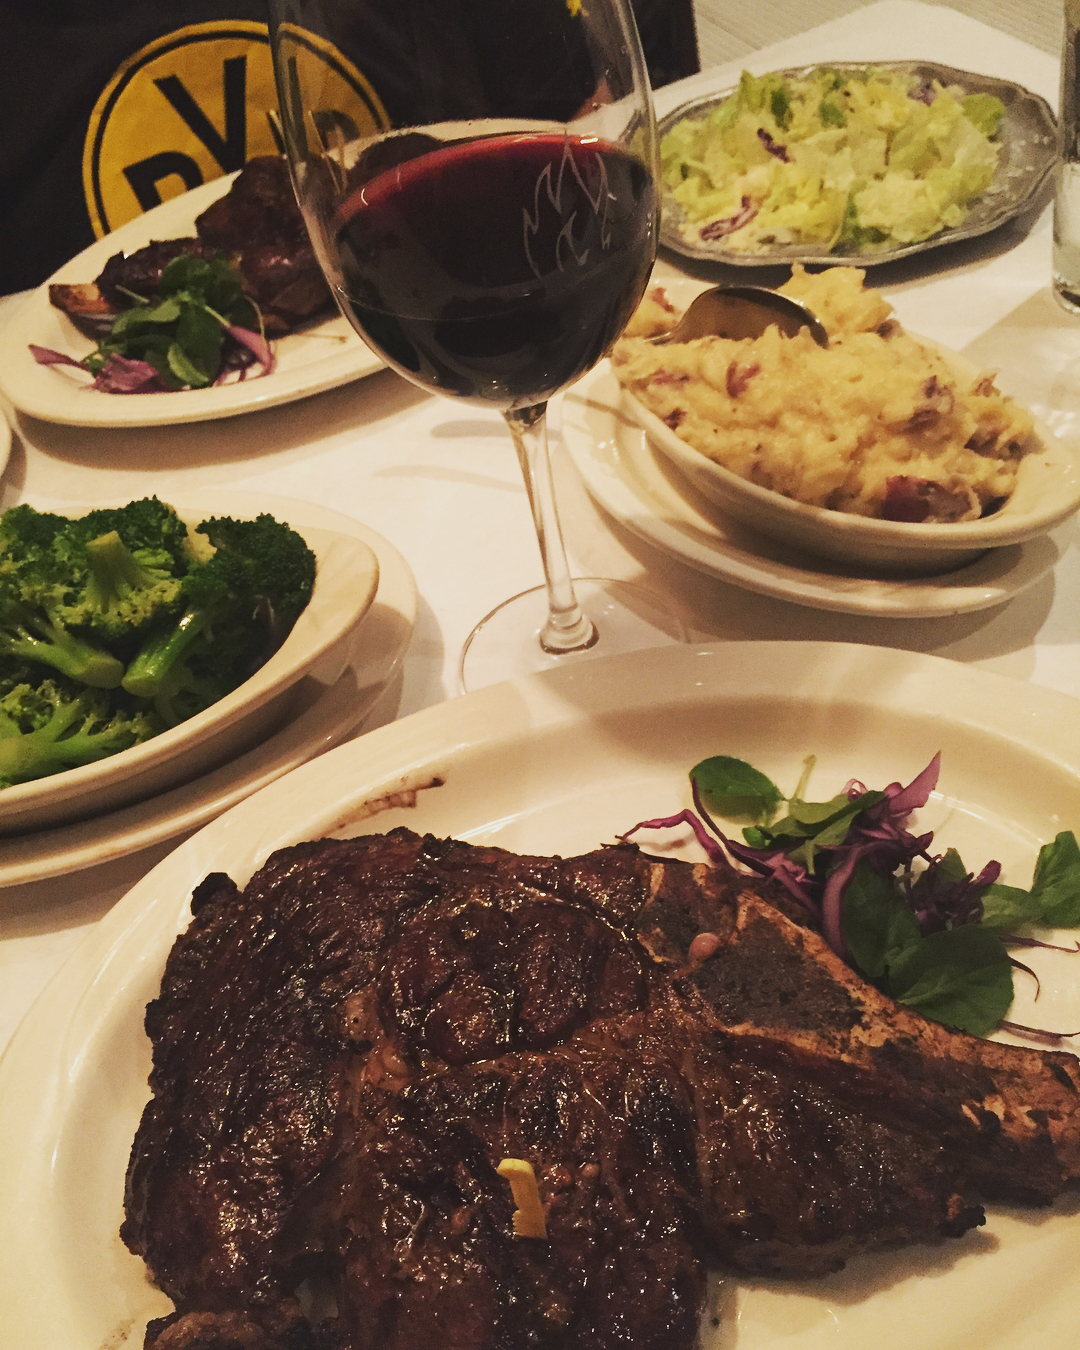 Steak and red wine at Charley's Steak House